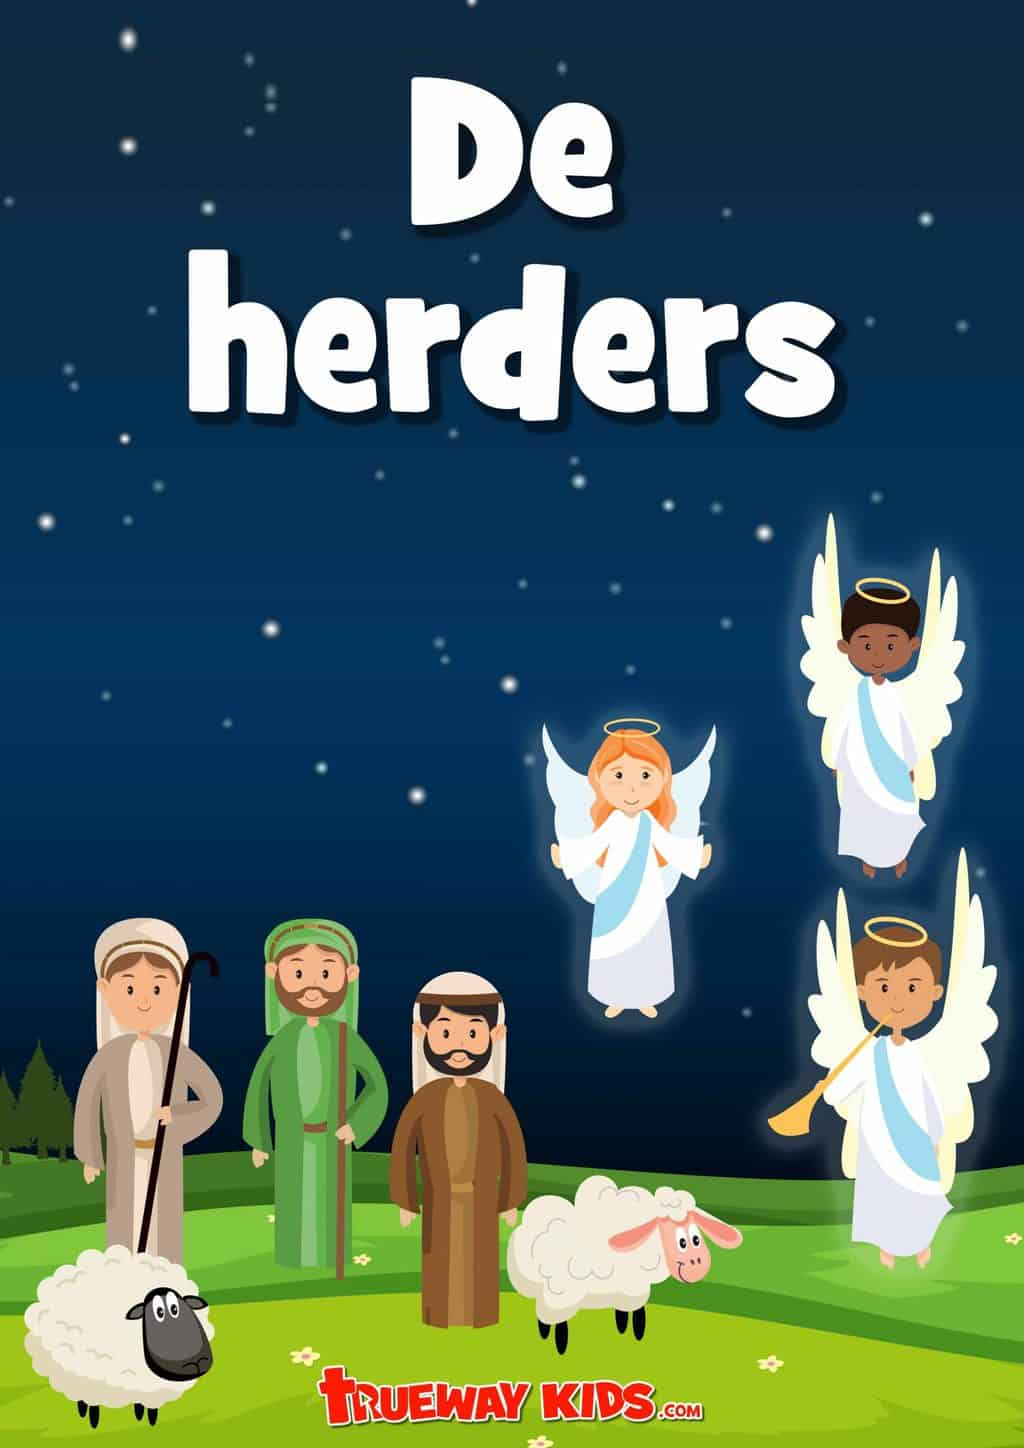 Free printbale preschool Bible lesson on the Christmas Shepherds. Learn about the candy cane and explore the Bible passage with worksheets, games, Bible activities, coloring sheets and more